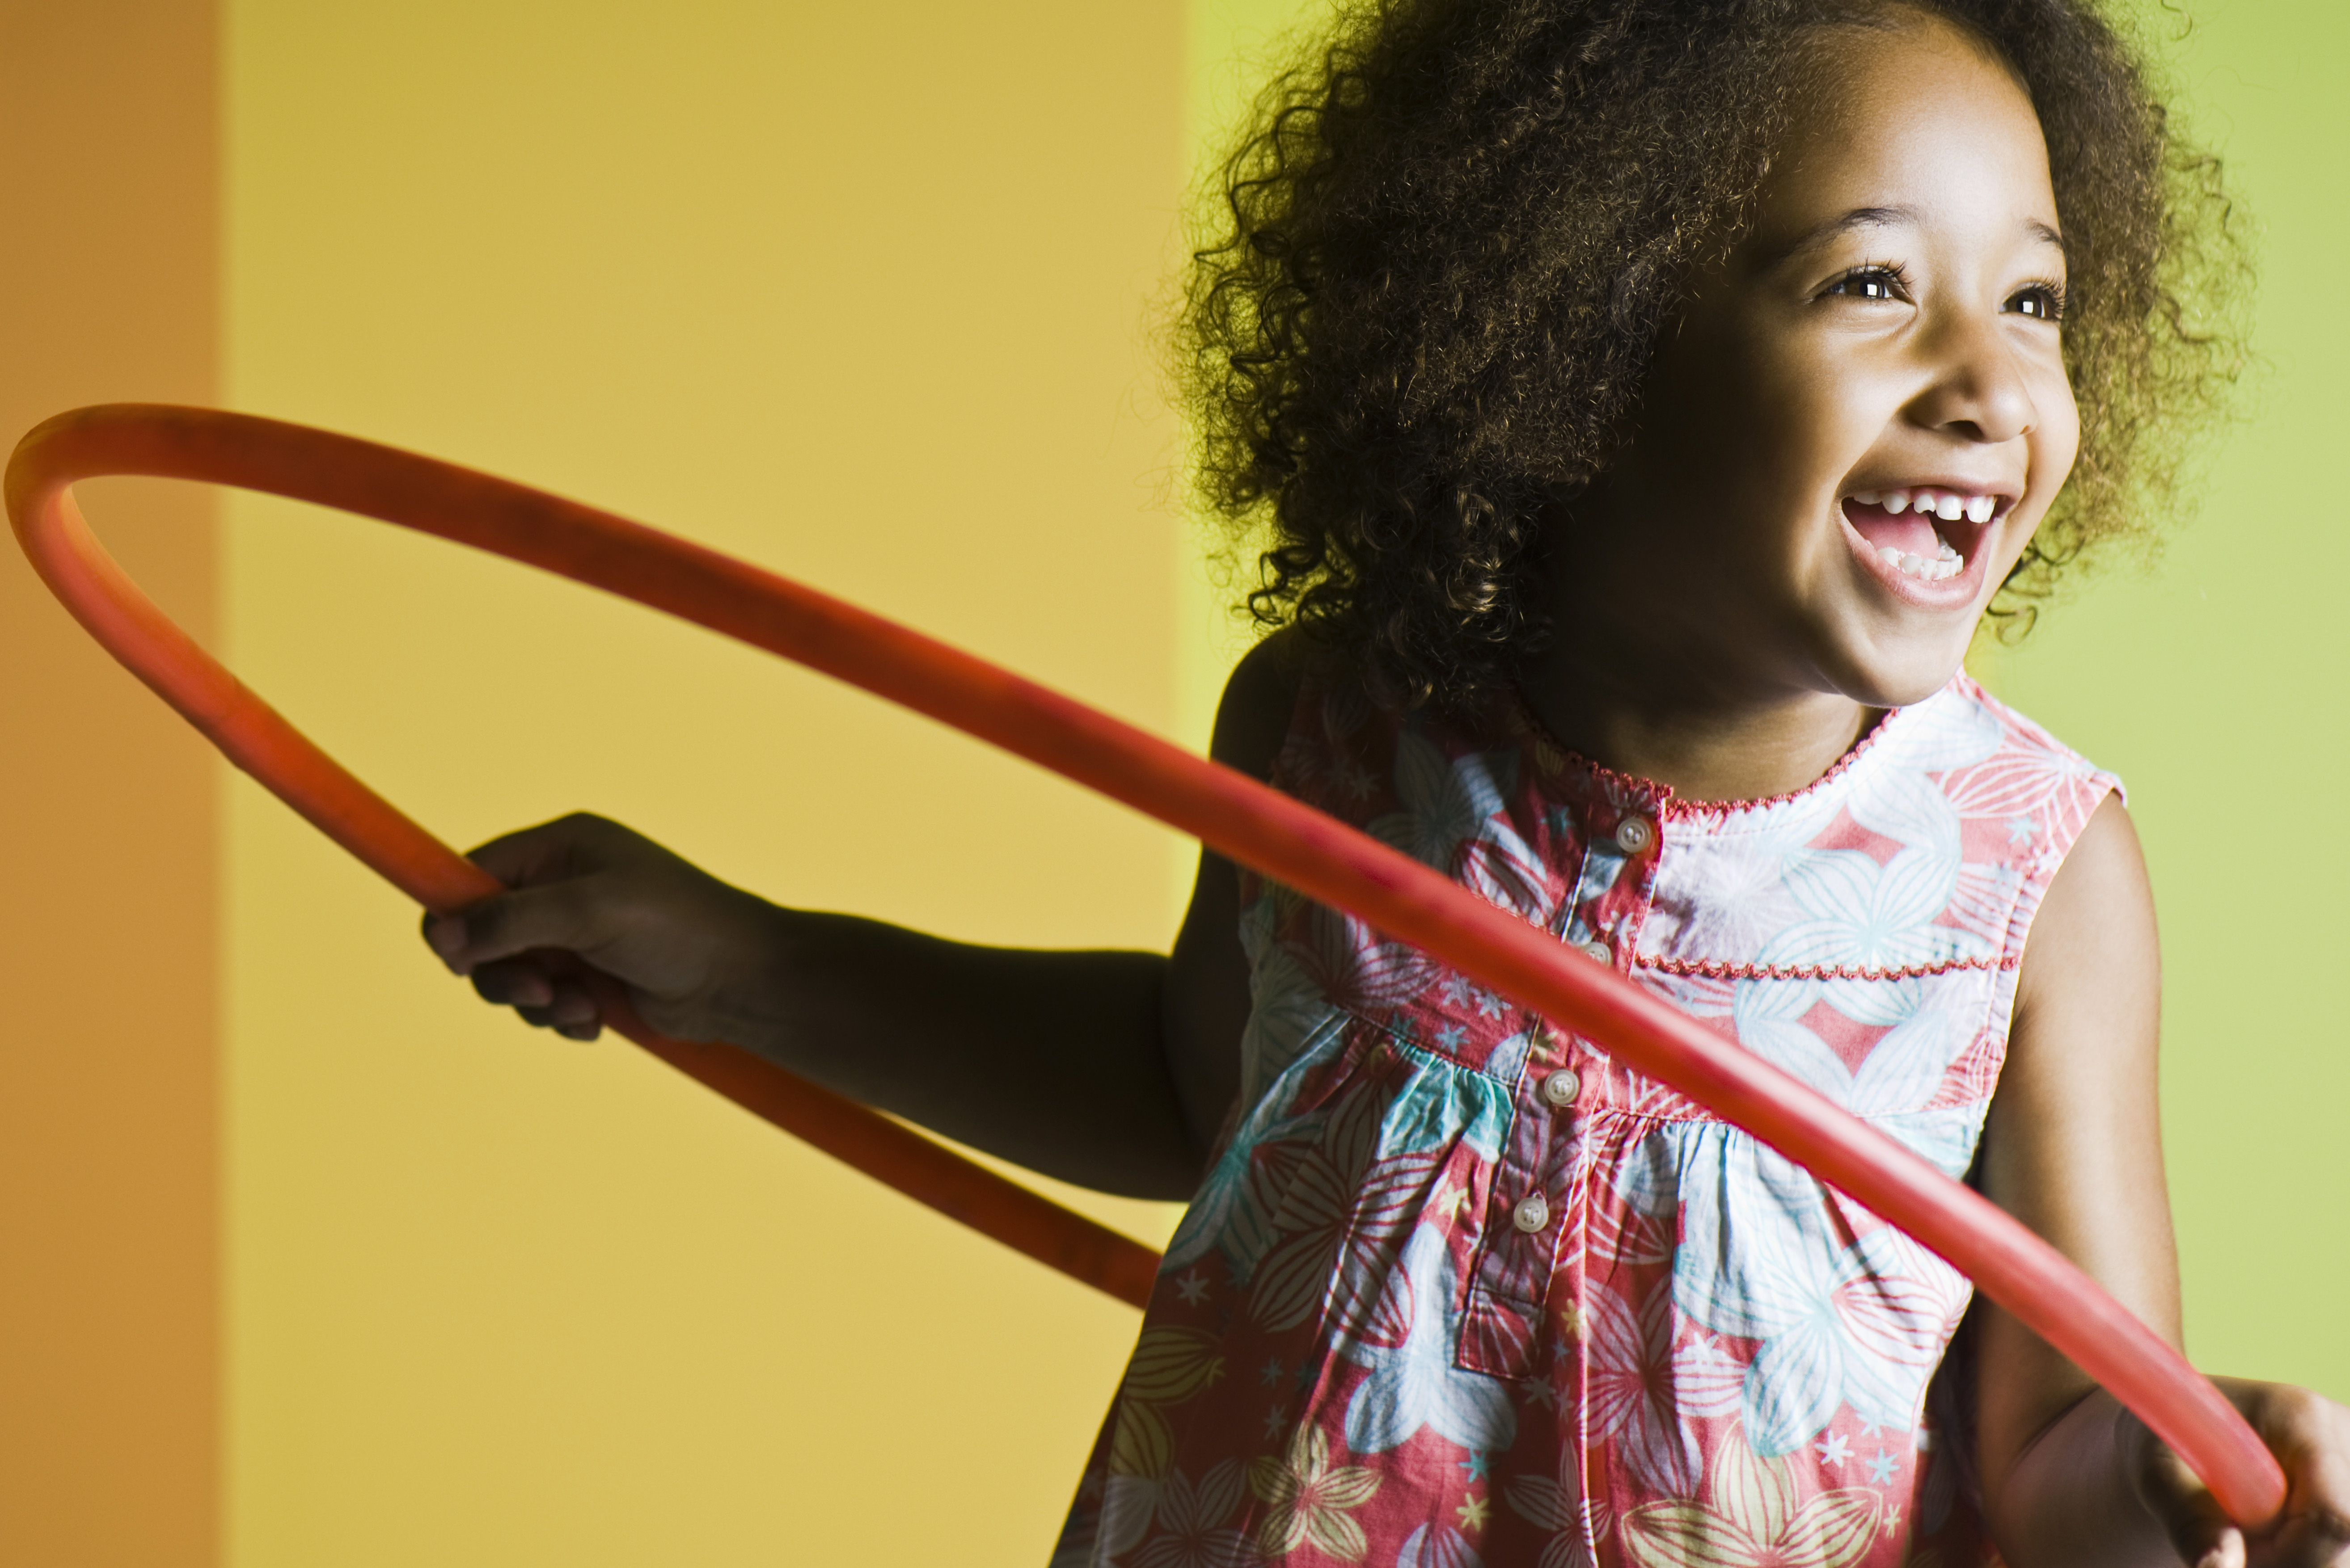 active party games that get kids moving